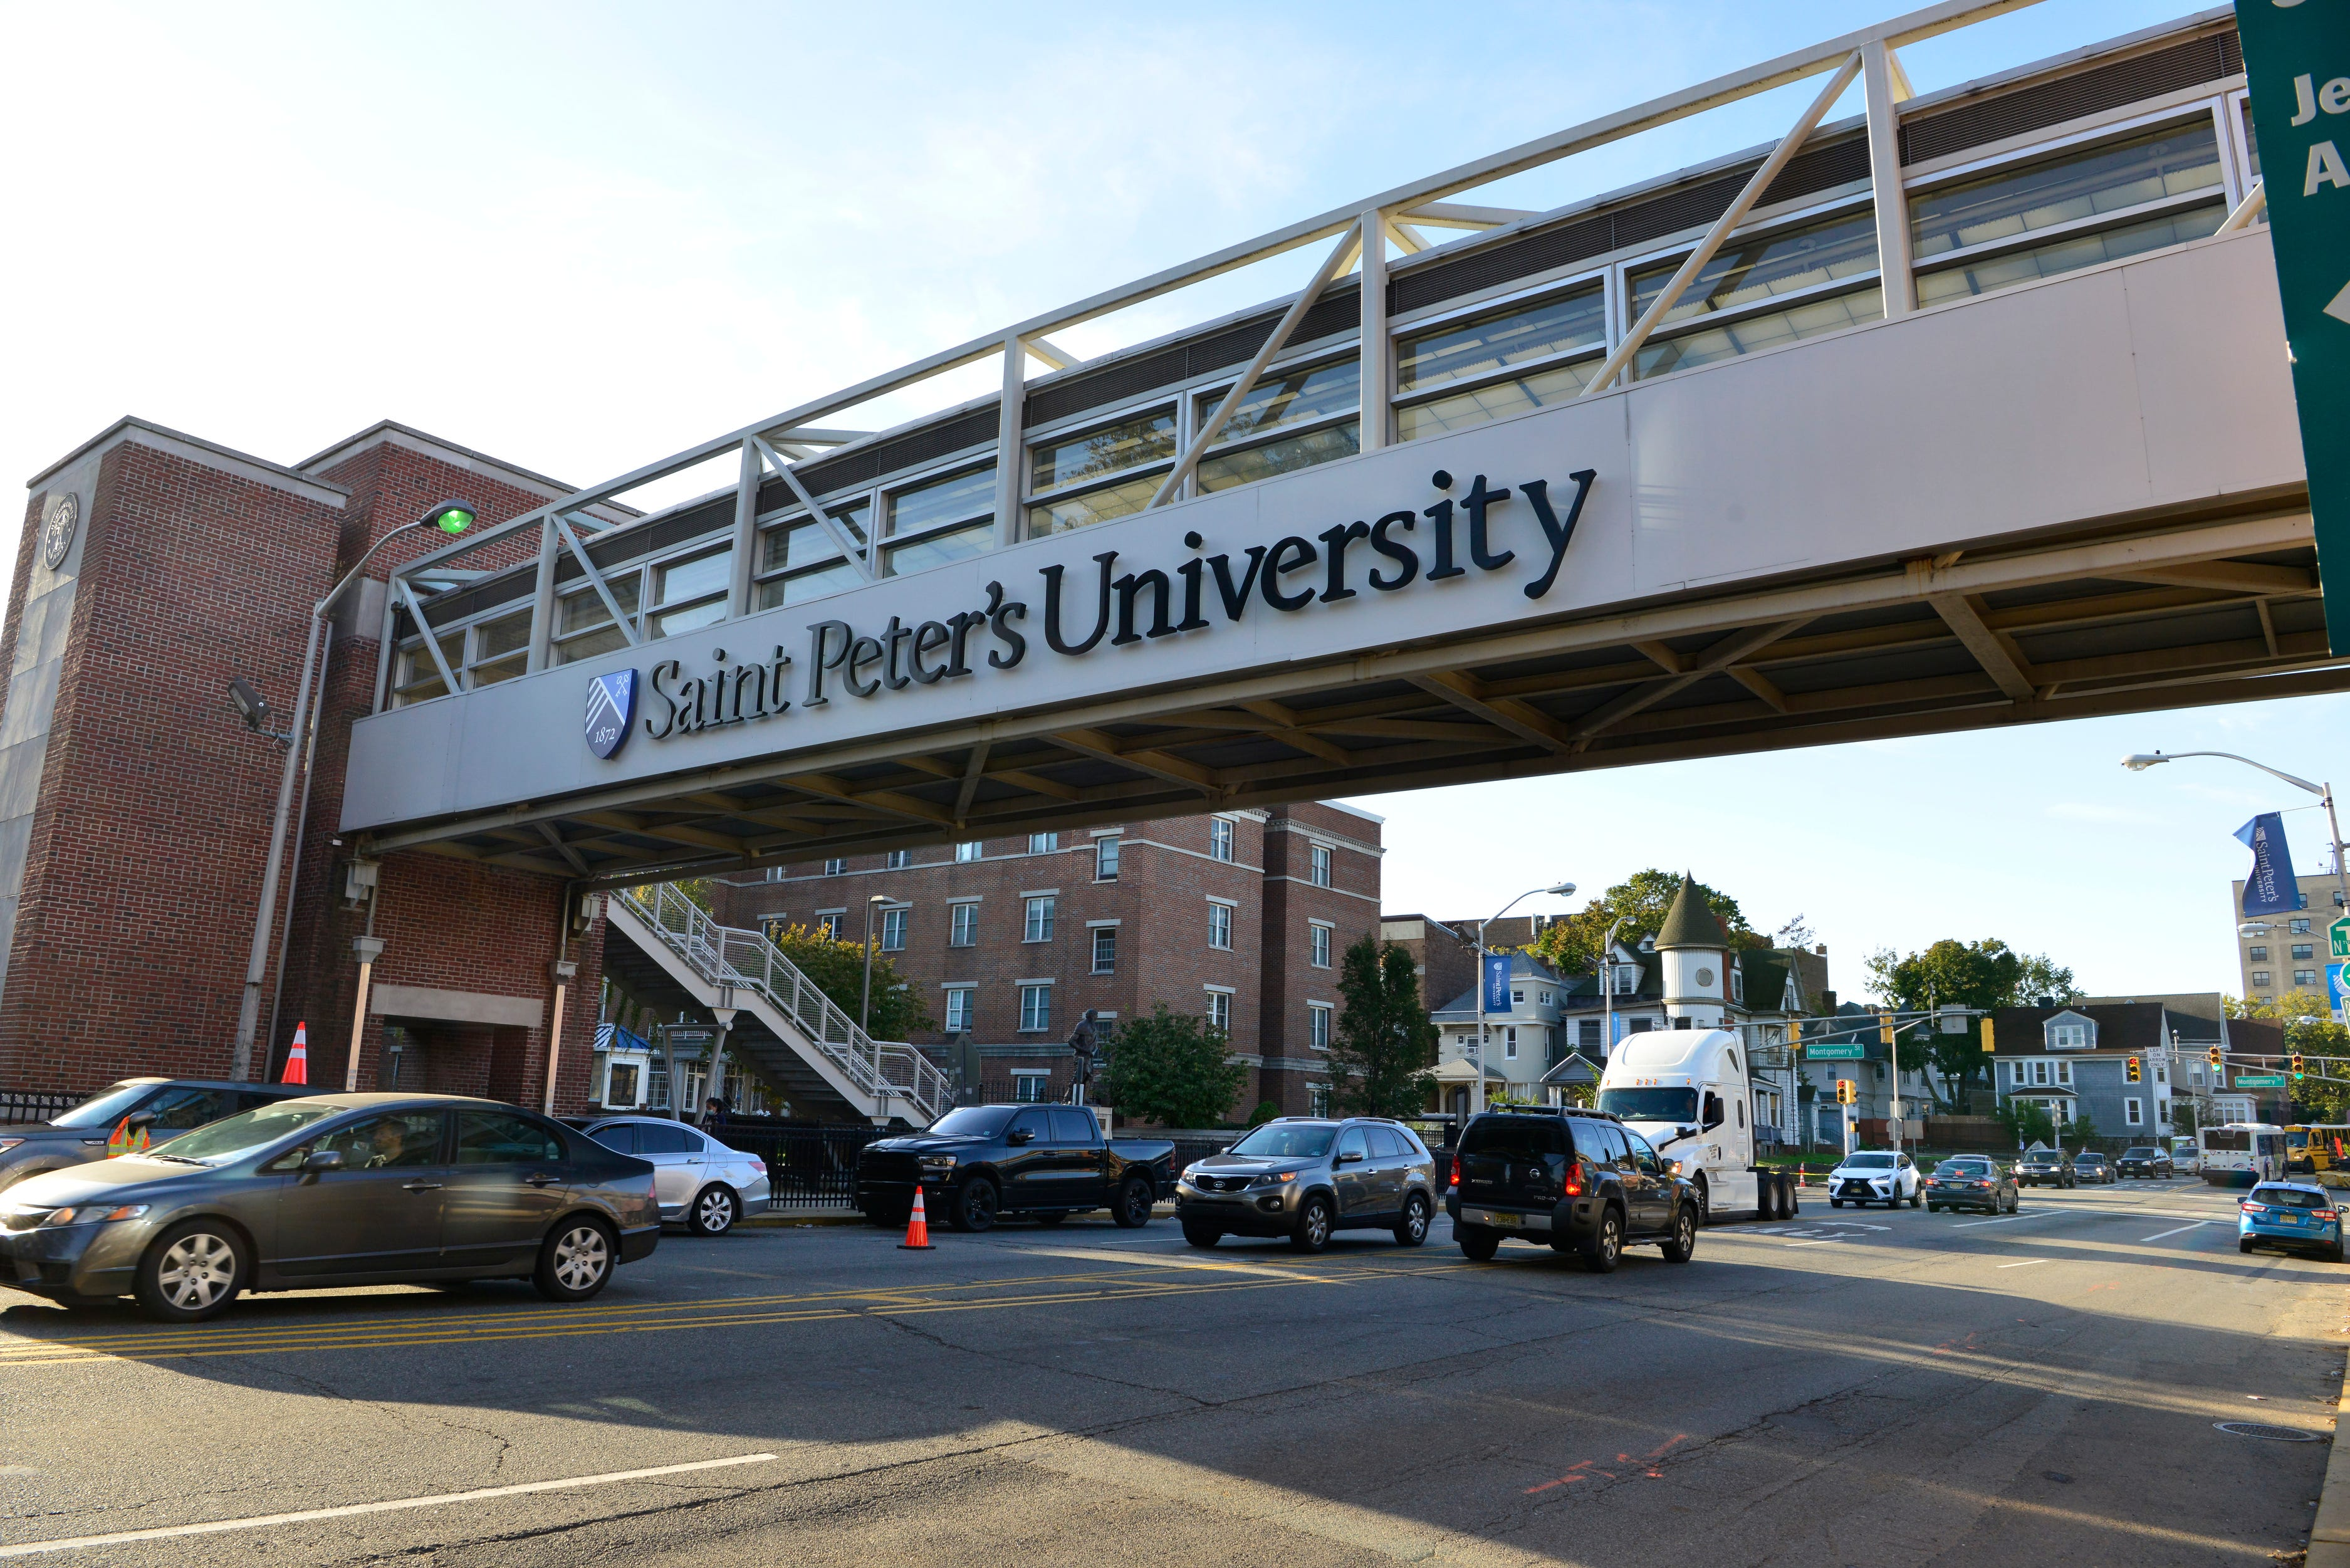 Shortly before the pandemic hit, Saint Peter's University in Jersey City took steps to reduce operating expenses, renegotiated some vendor contracts, suspended university contributions to retirement accounts and eliminated sixpositions.